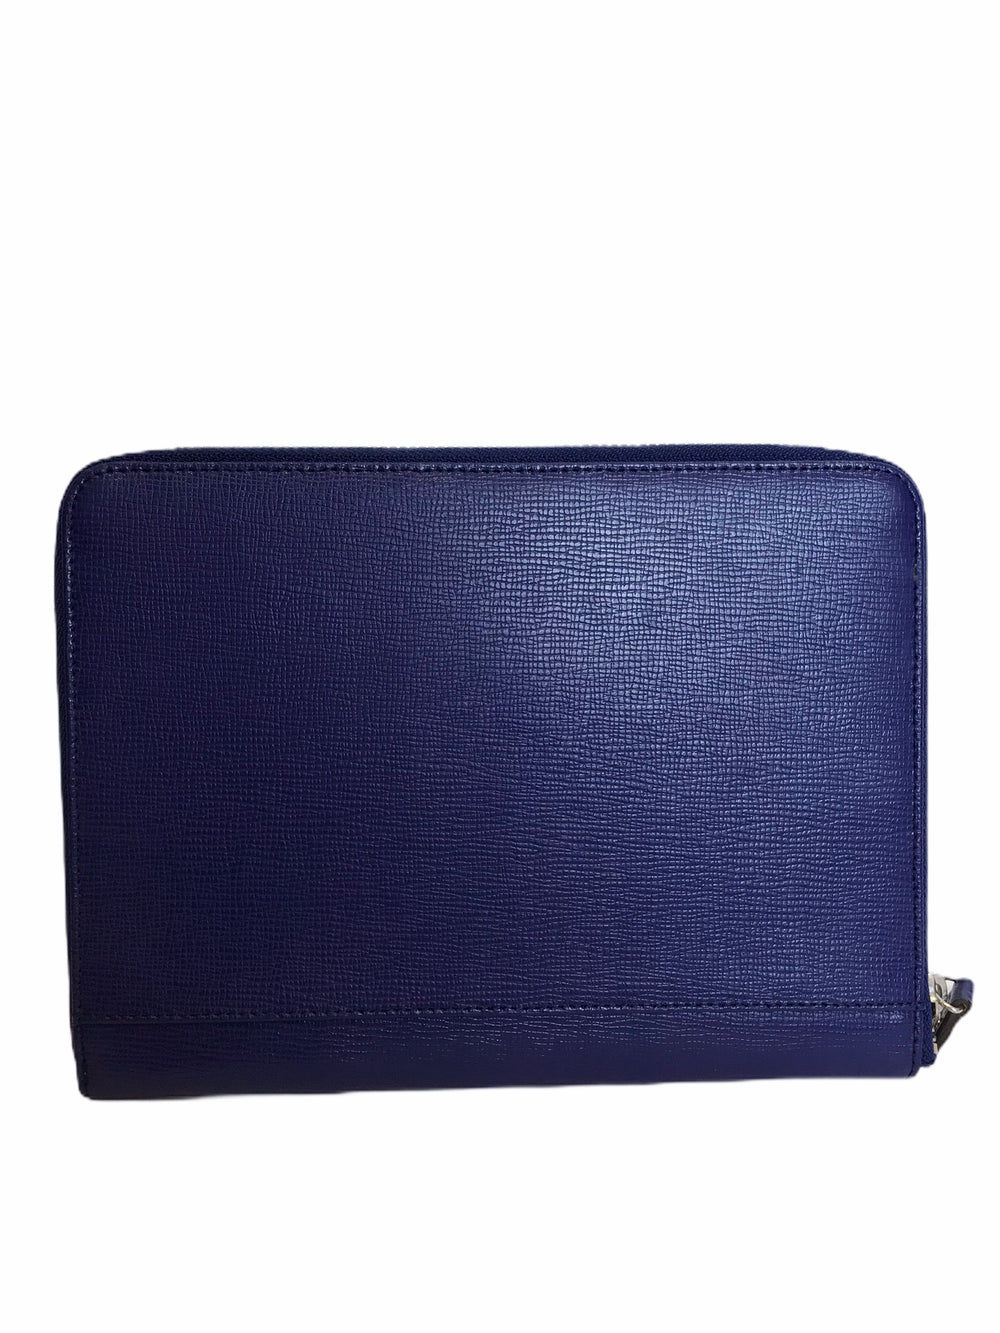 L.K Bennett Purple Tablet/iPad Holder - As Seen on Instagram